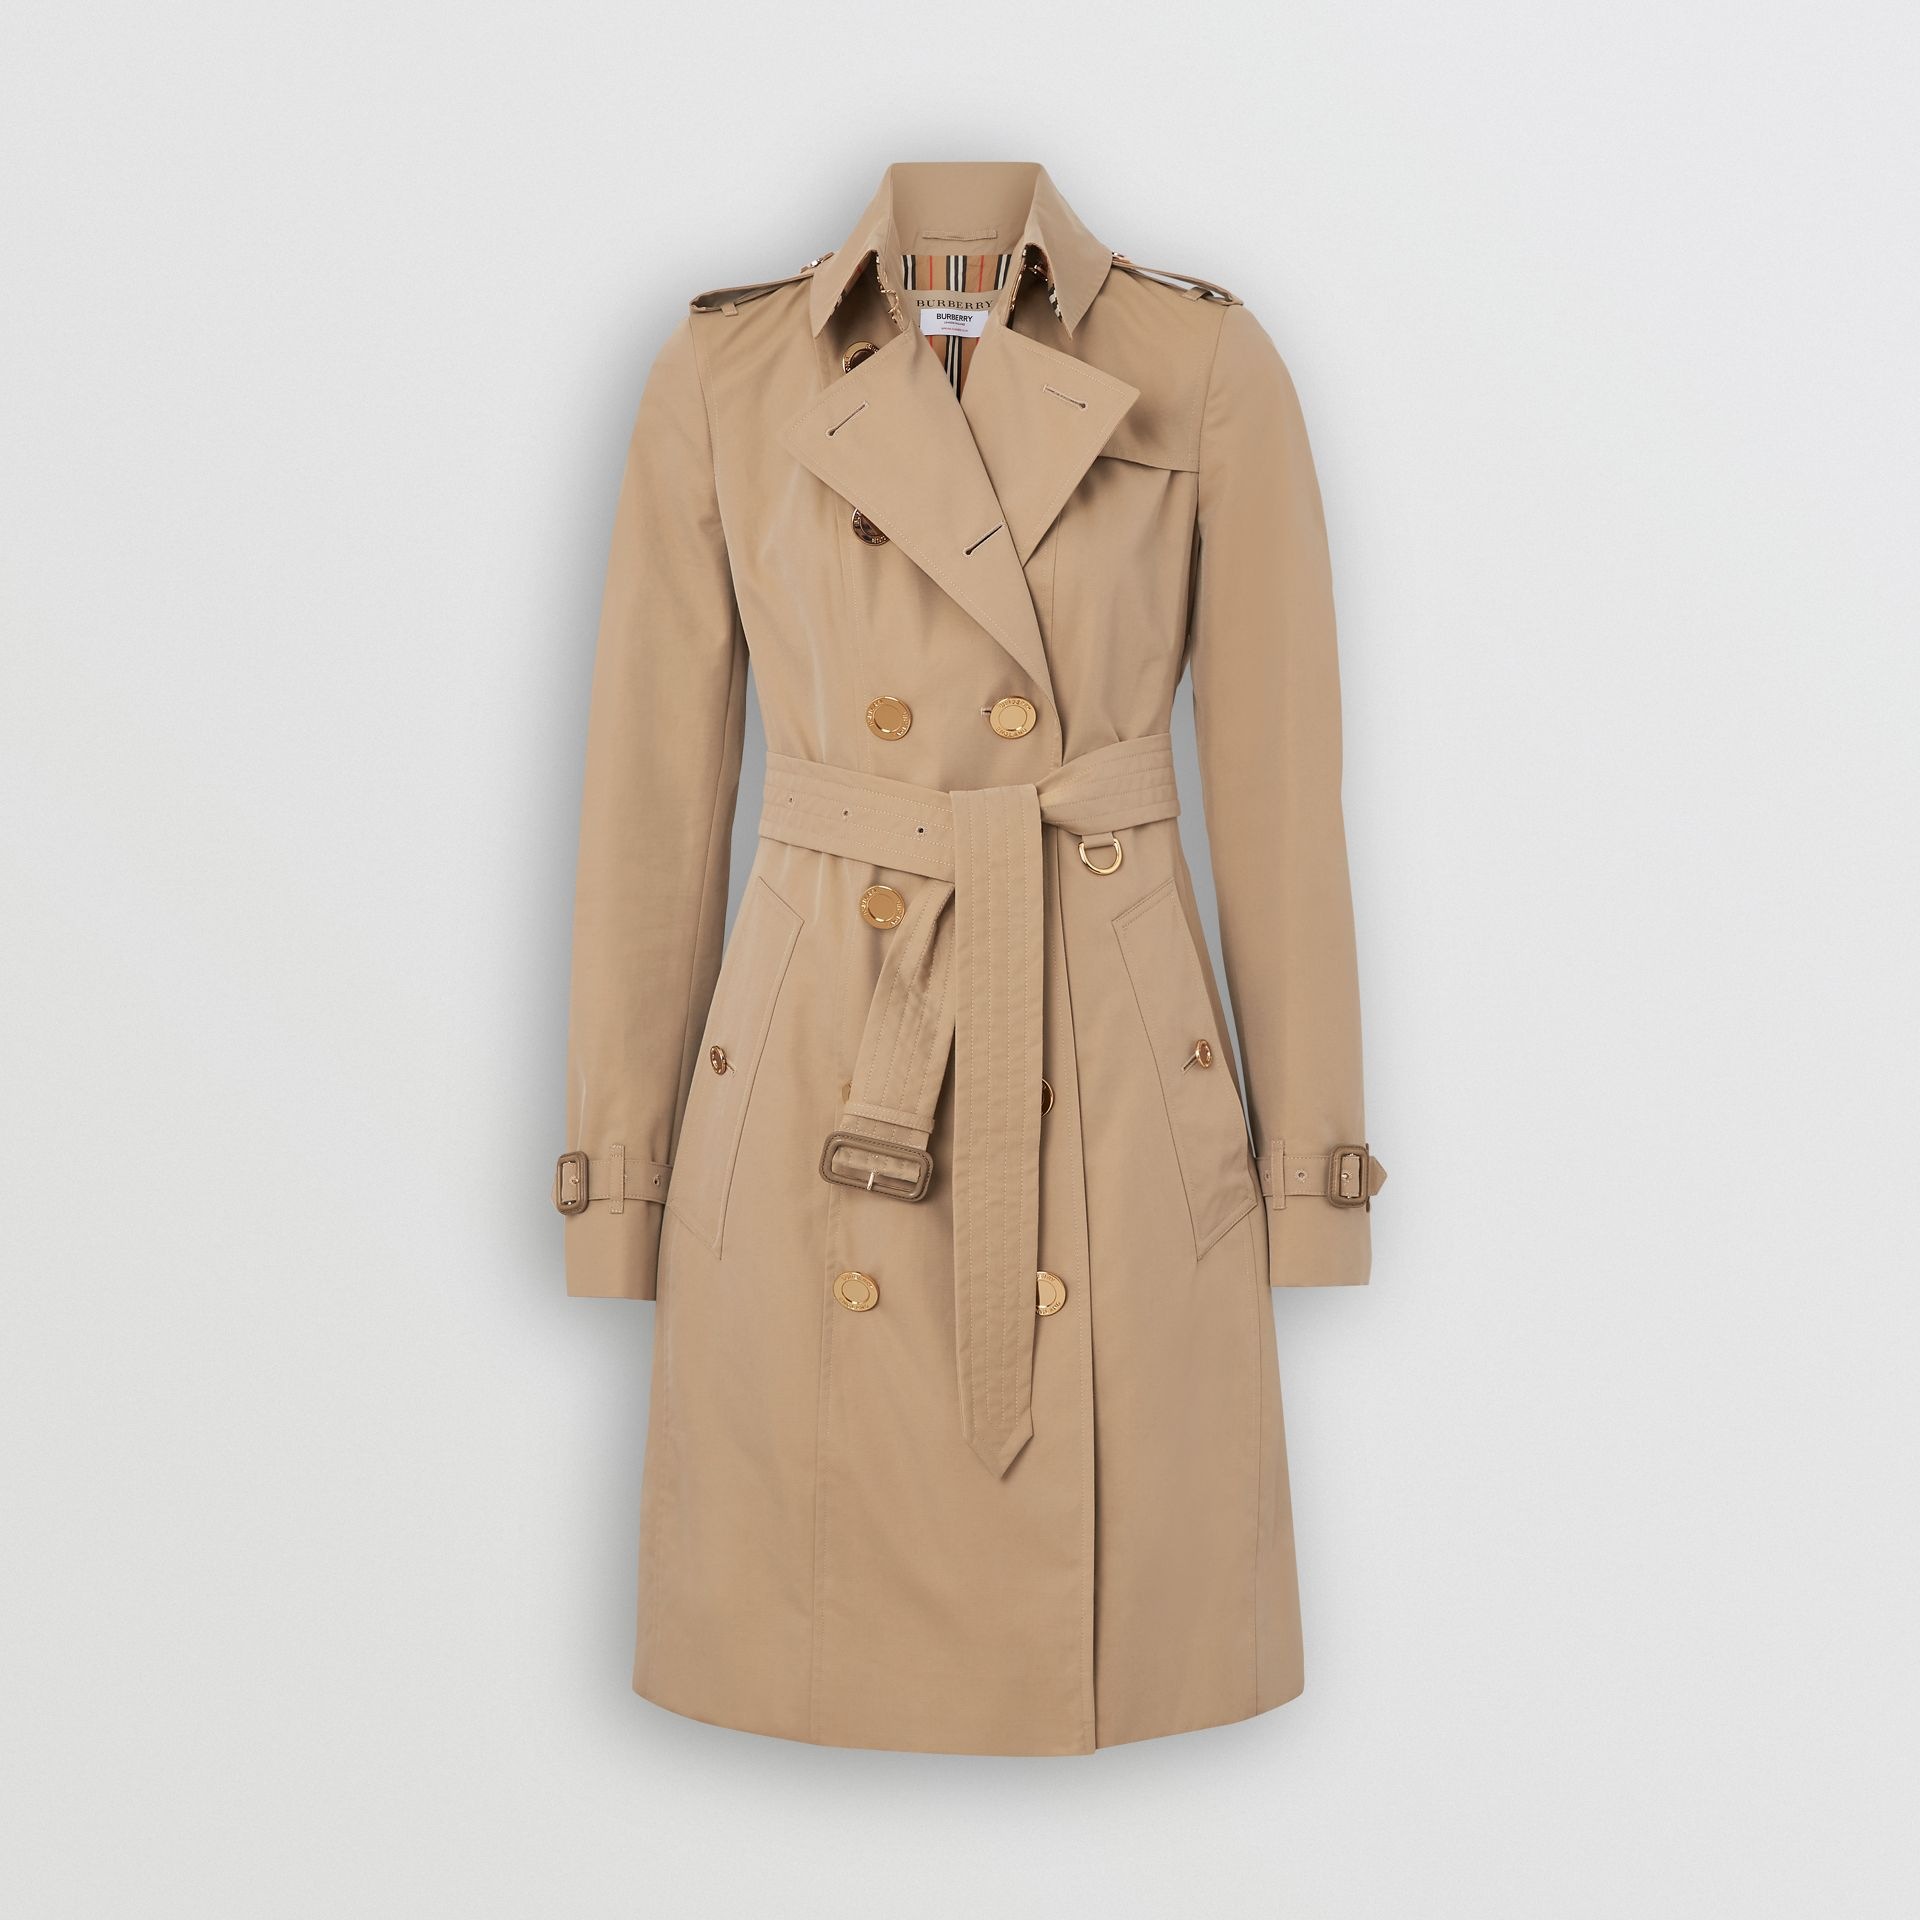 Gold Button Cotton Gabardine Trench Coat in Honey - Women | Burberry Canada - gallery image 3